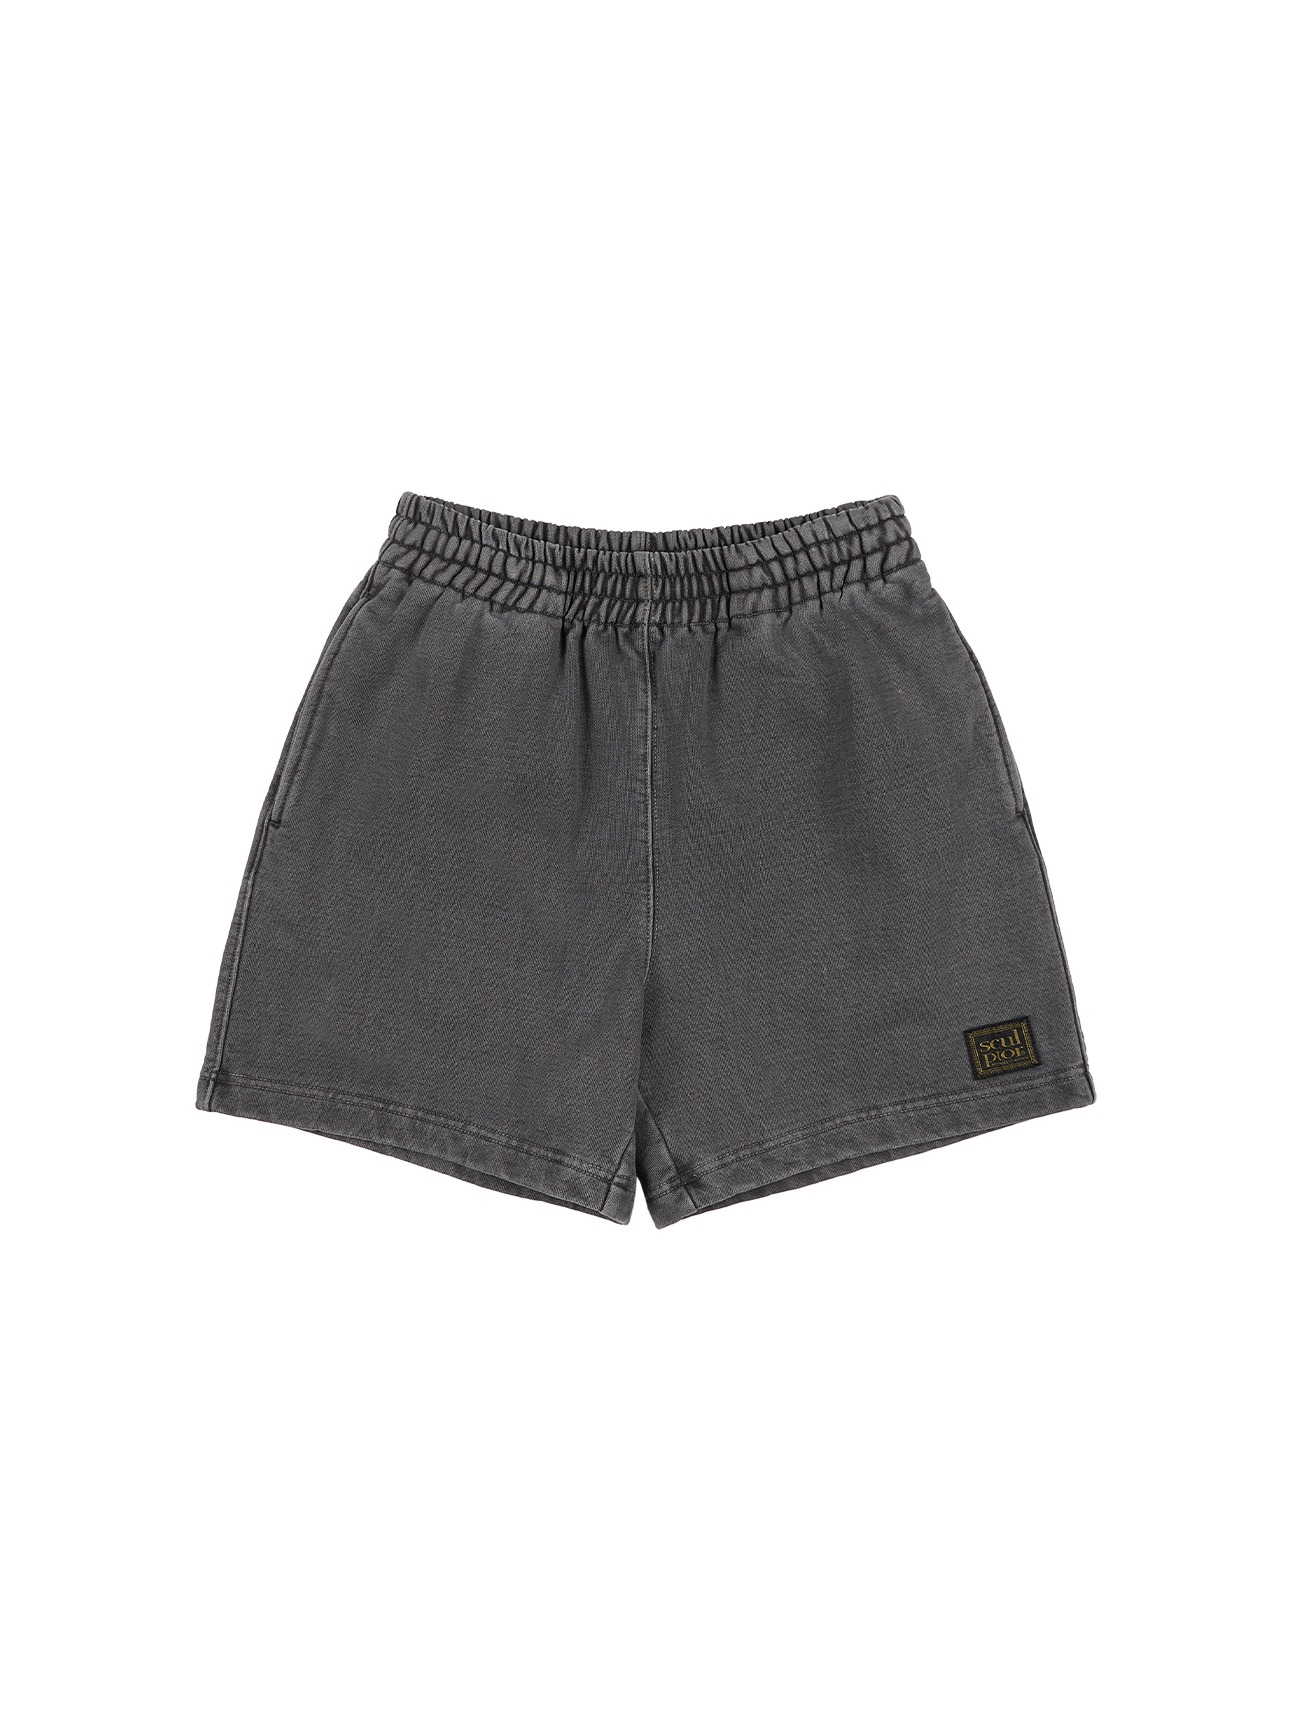 90's Logo Sweat shorts Washed Charcoal